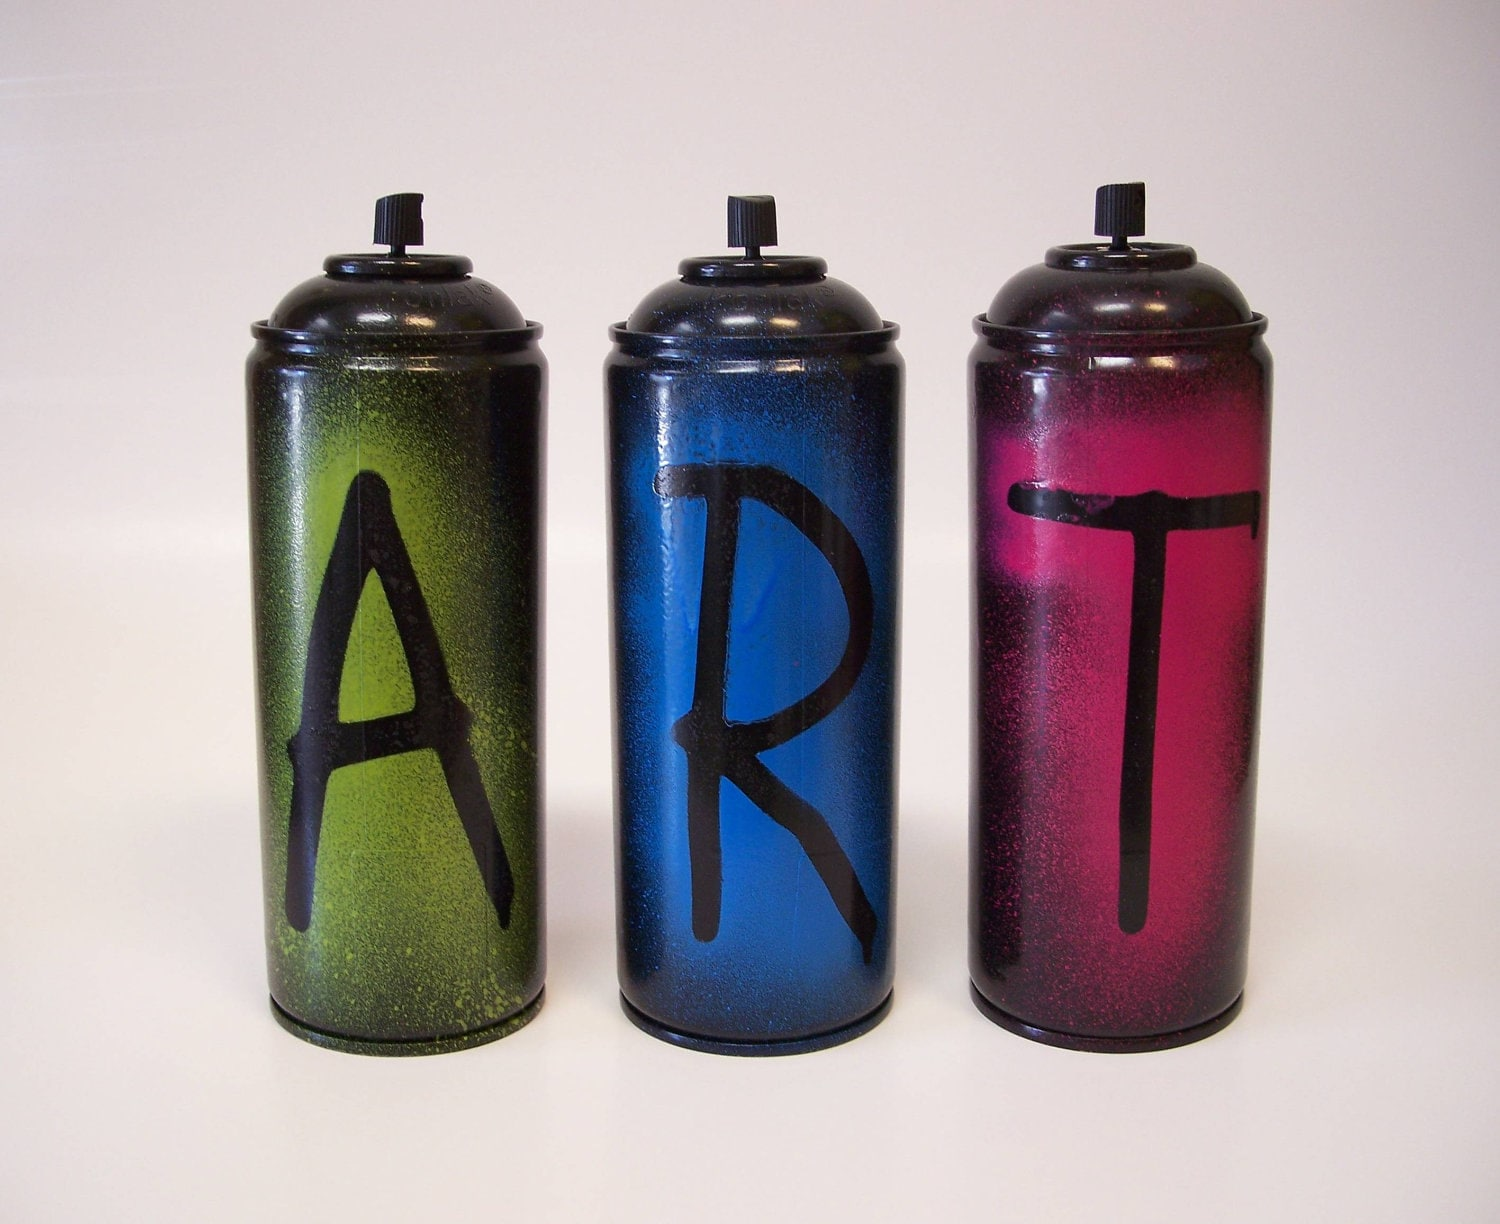 2 Sided Empty Spray Paint Cans Set Of 3 Paint The By Nonuglyfaces